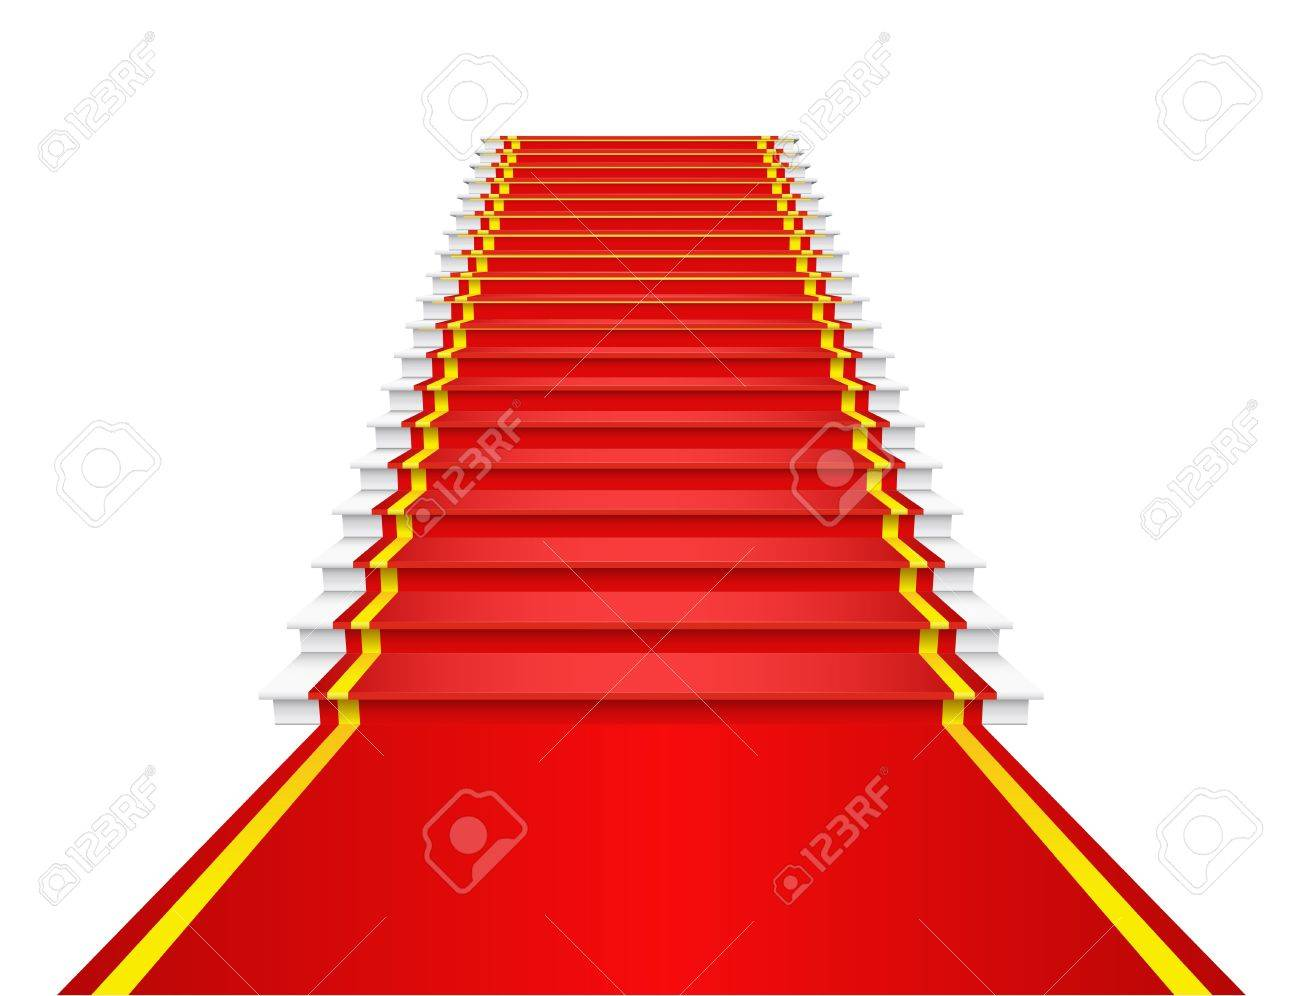 Red carpet on the stairs is shown in the image. Stock Vector - 12067457